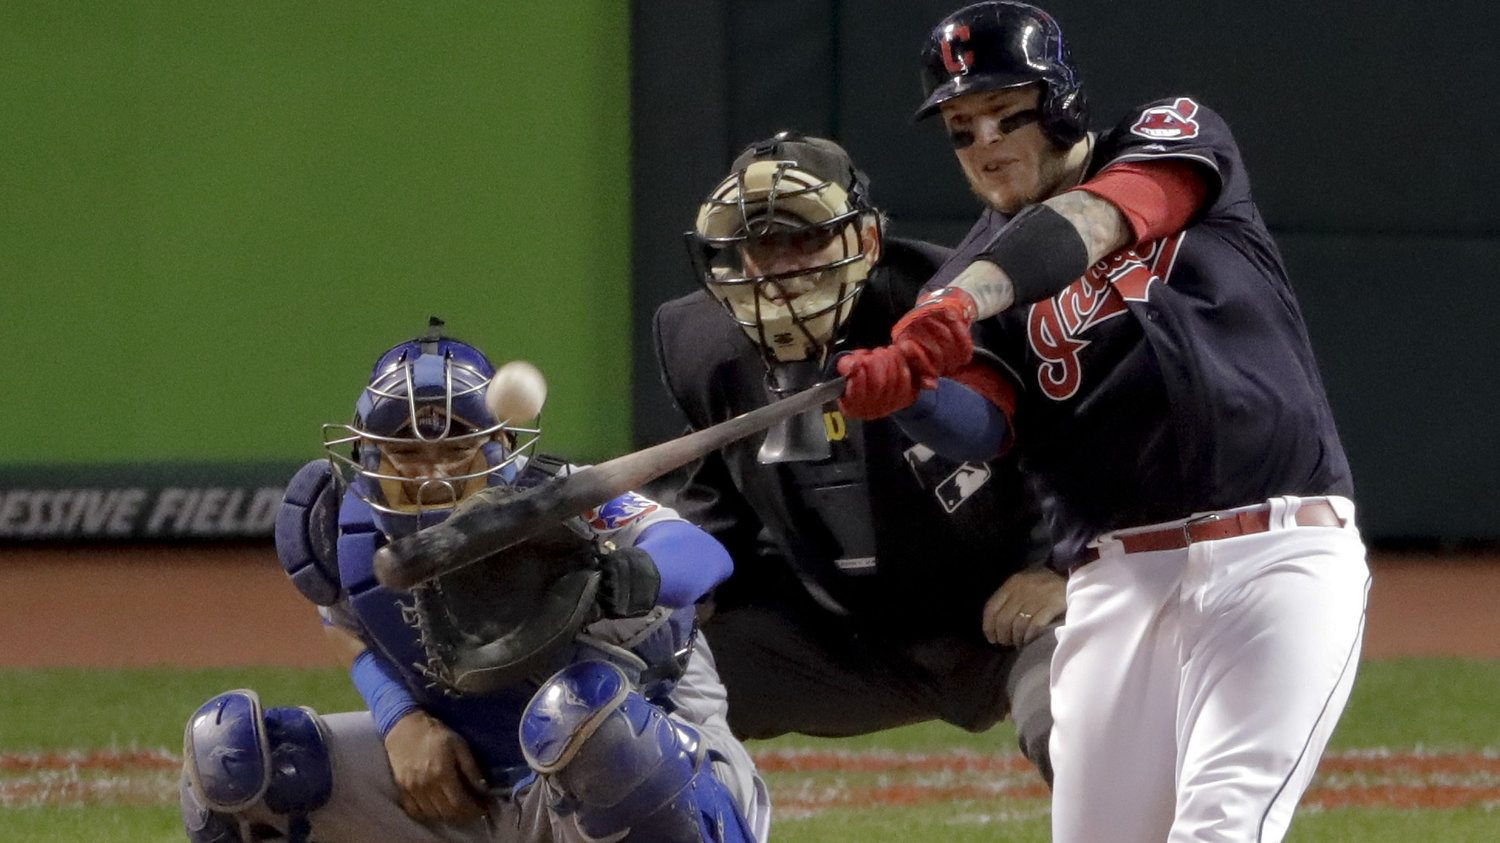 Cleveland Indians Beats Chicago Cubs 6-0 In Game 1 Of World Series